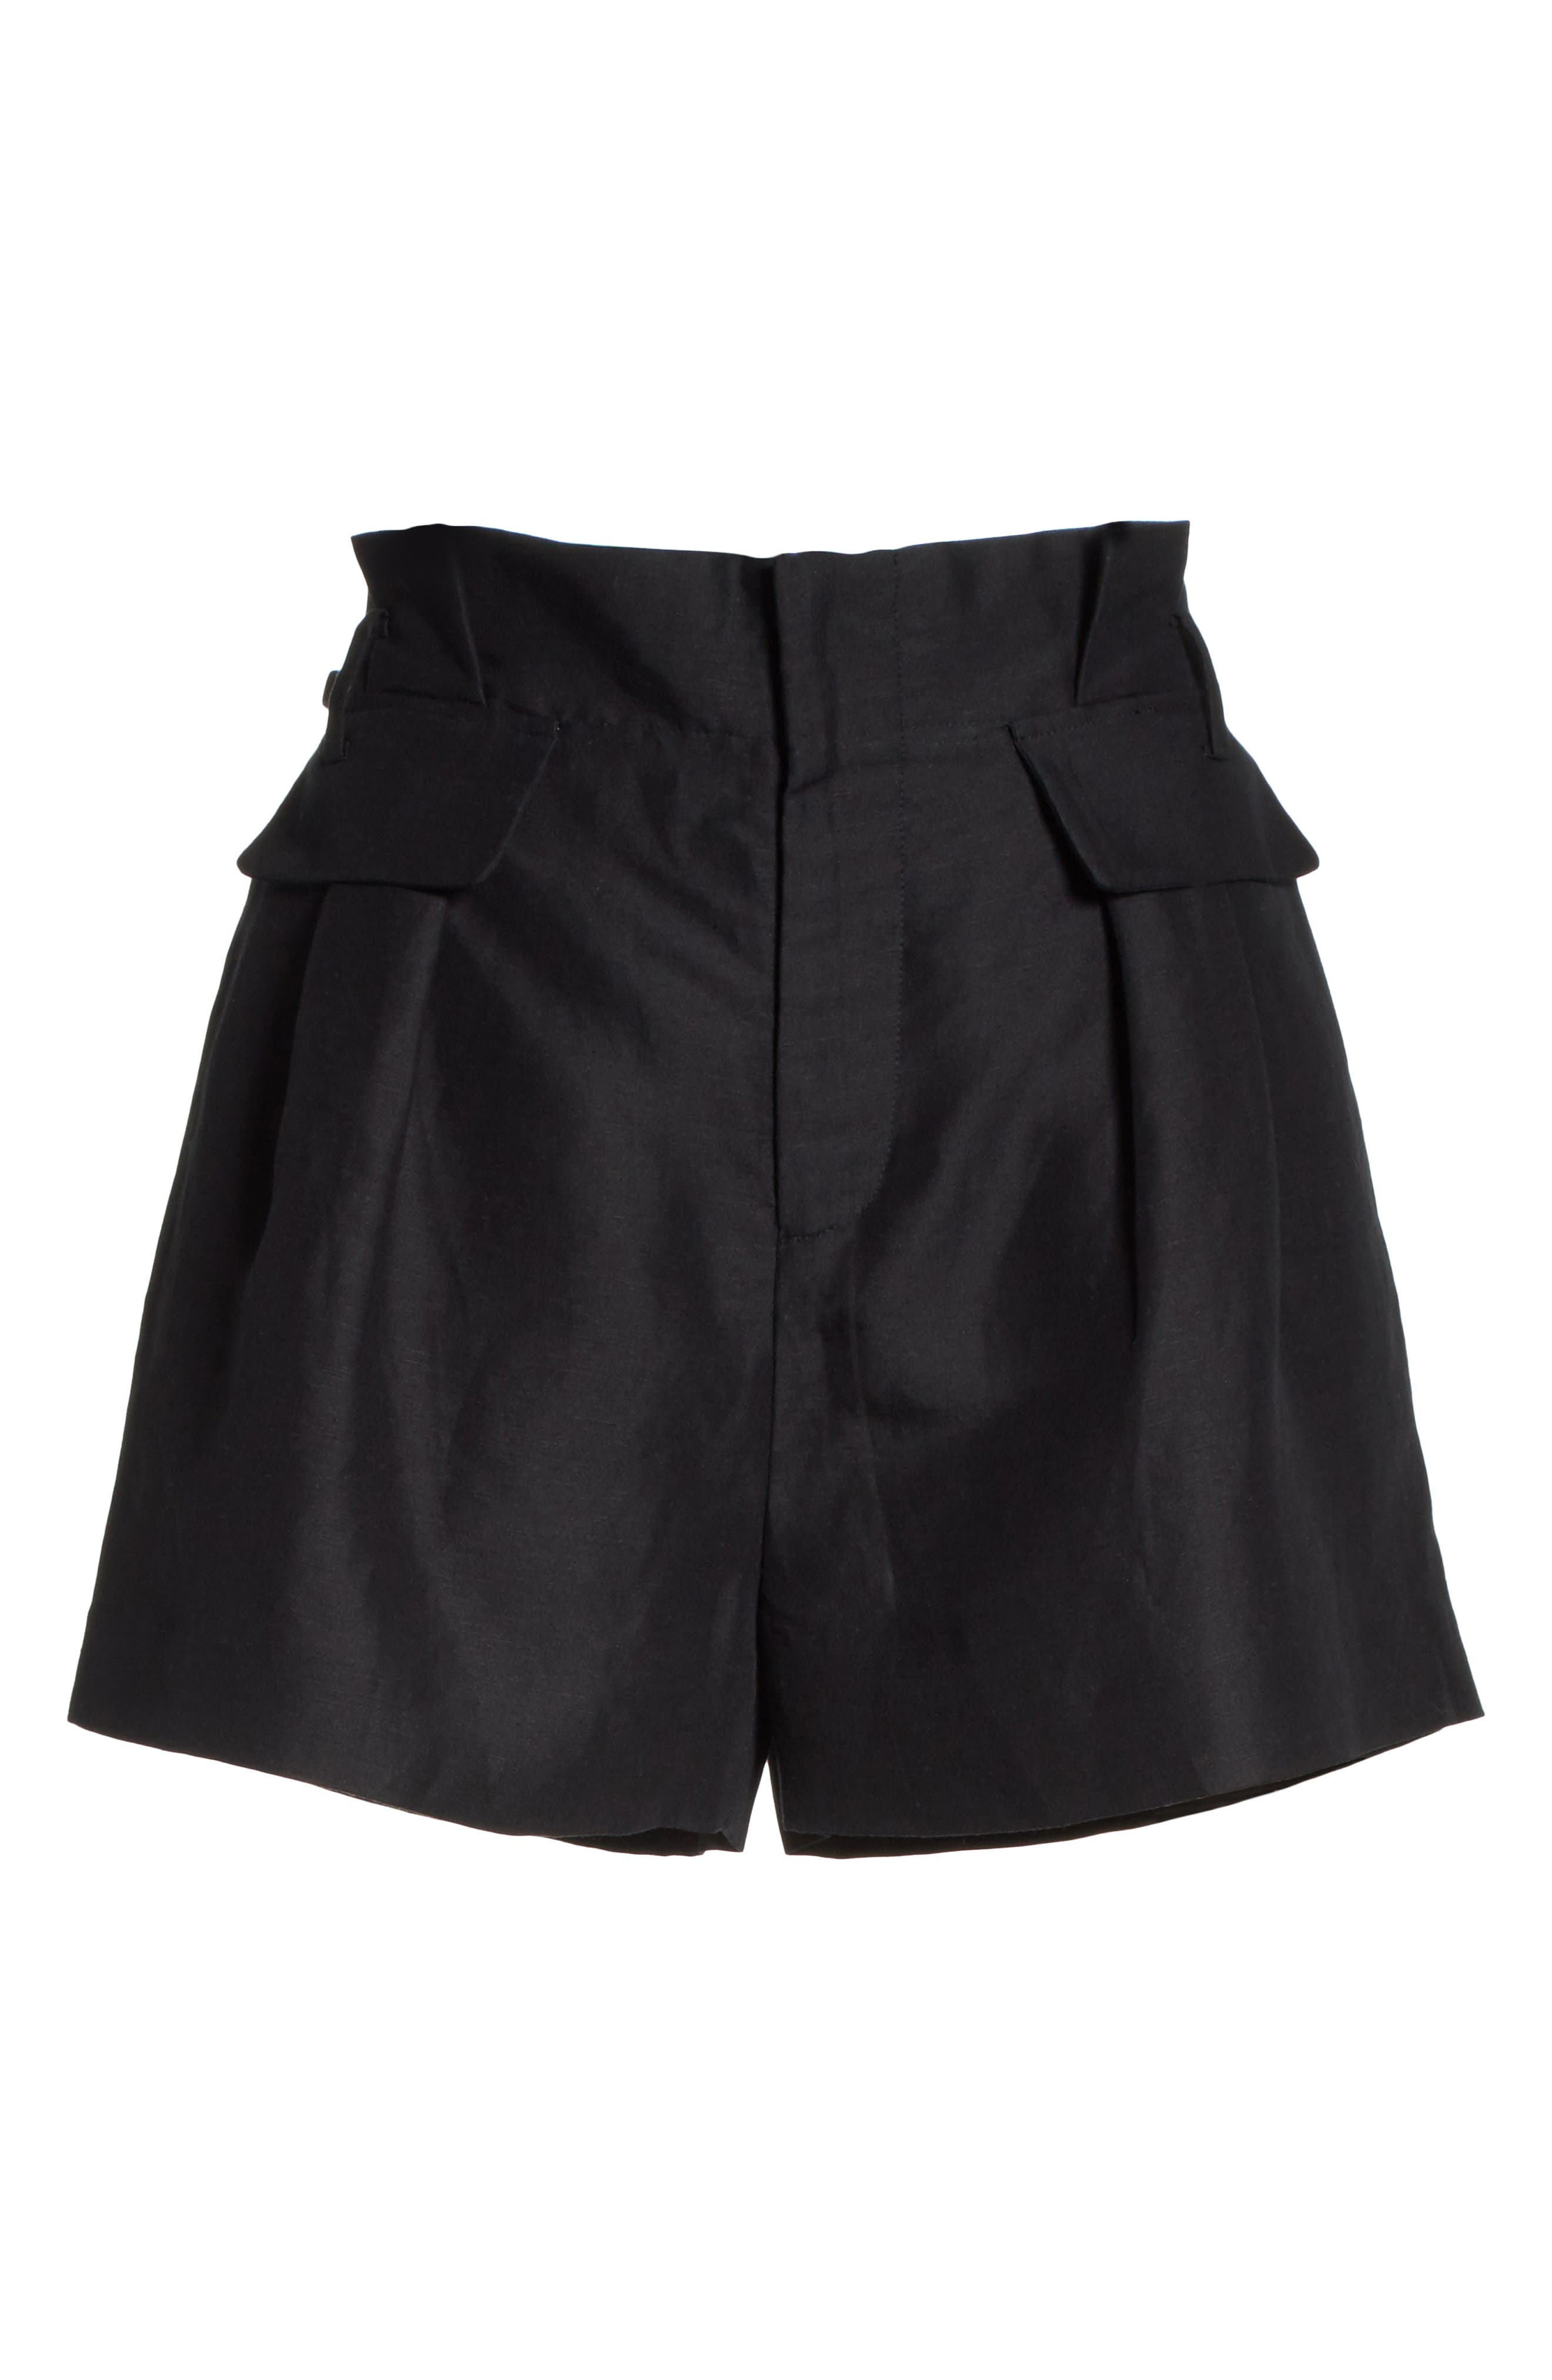 Paperbag Shorts,                             Alternate thumbnail 6, color,                             001